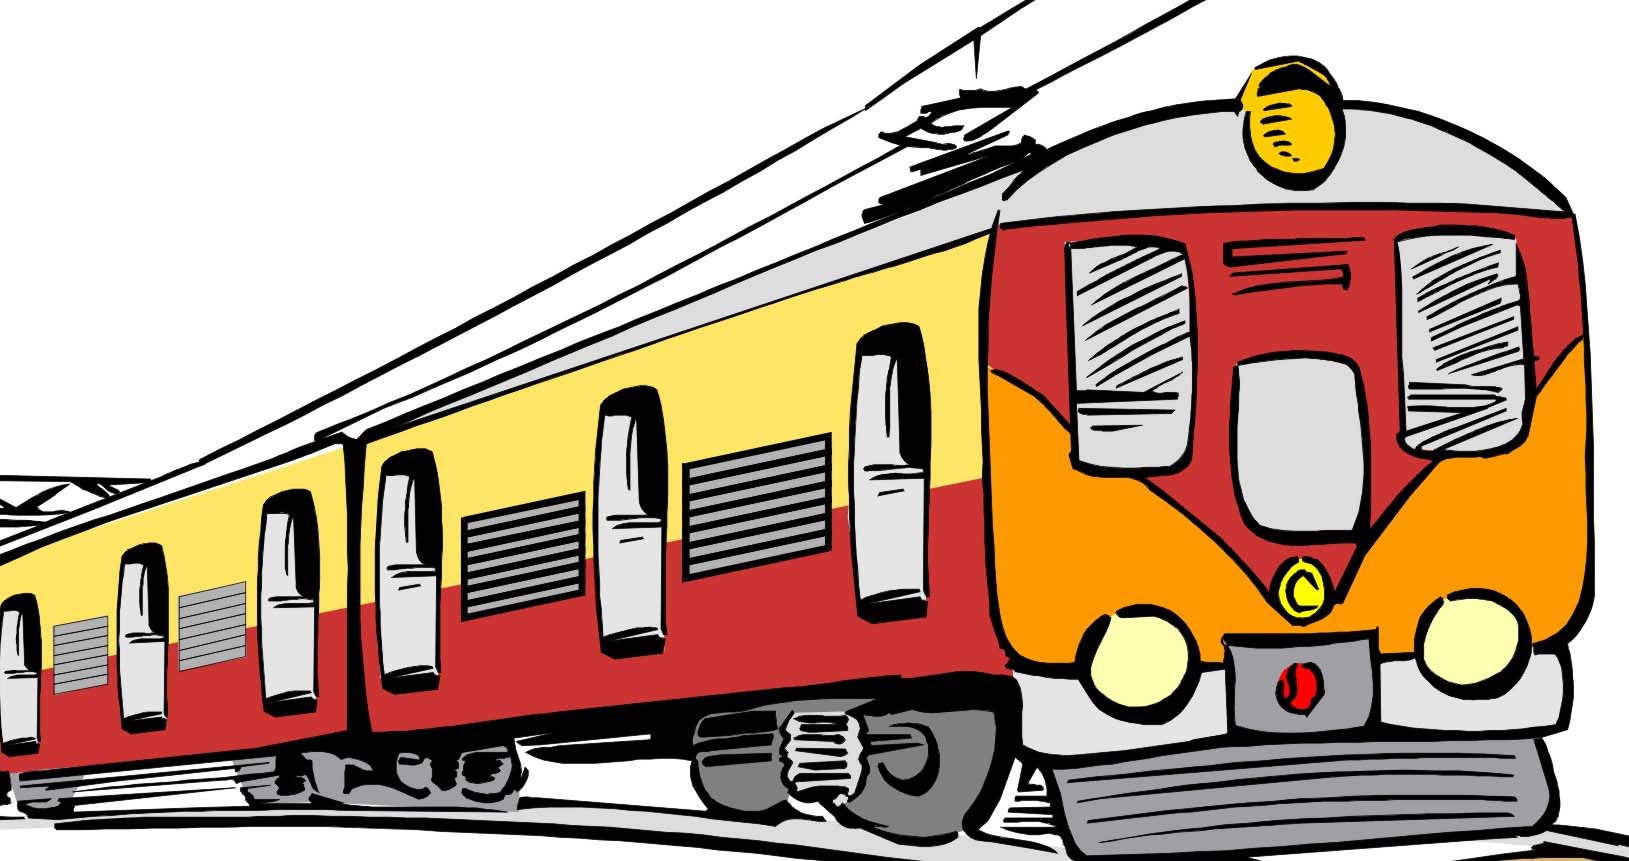 Passenger train clipart vector freeuse stock Train Clipart Images | Free download best Train Clipart ... vector freeuse stock